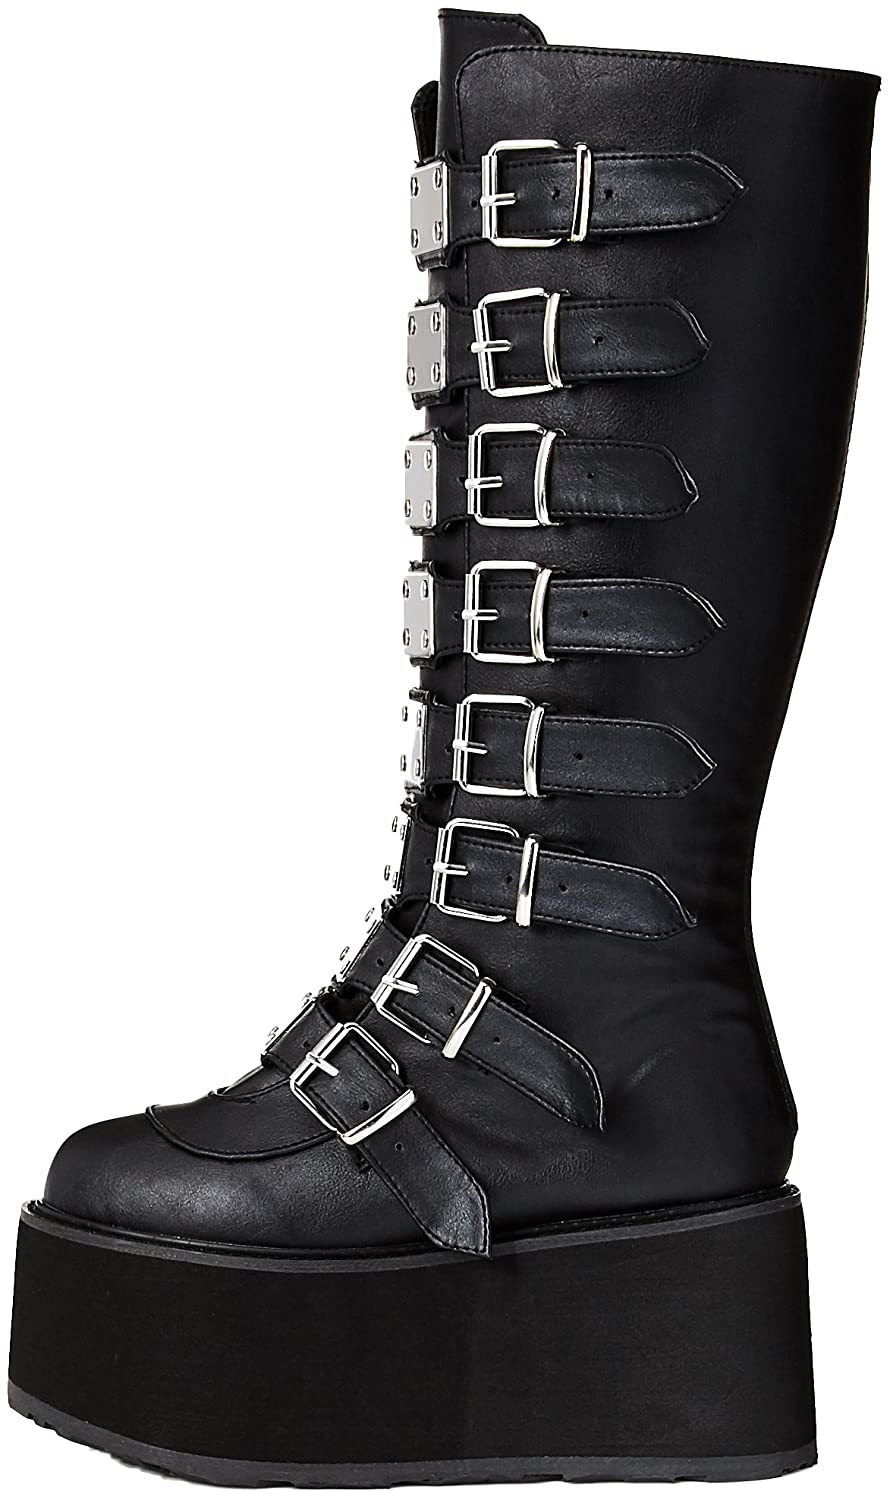 Demonia Women's Damned-318 Knee High Boot B00JR3AIGW Leather 7 B(M) US|Black Vegan Leather B00JR3AIGW 6095e7